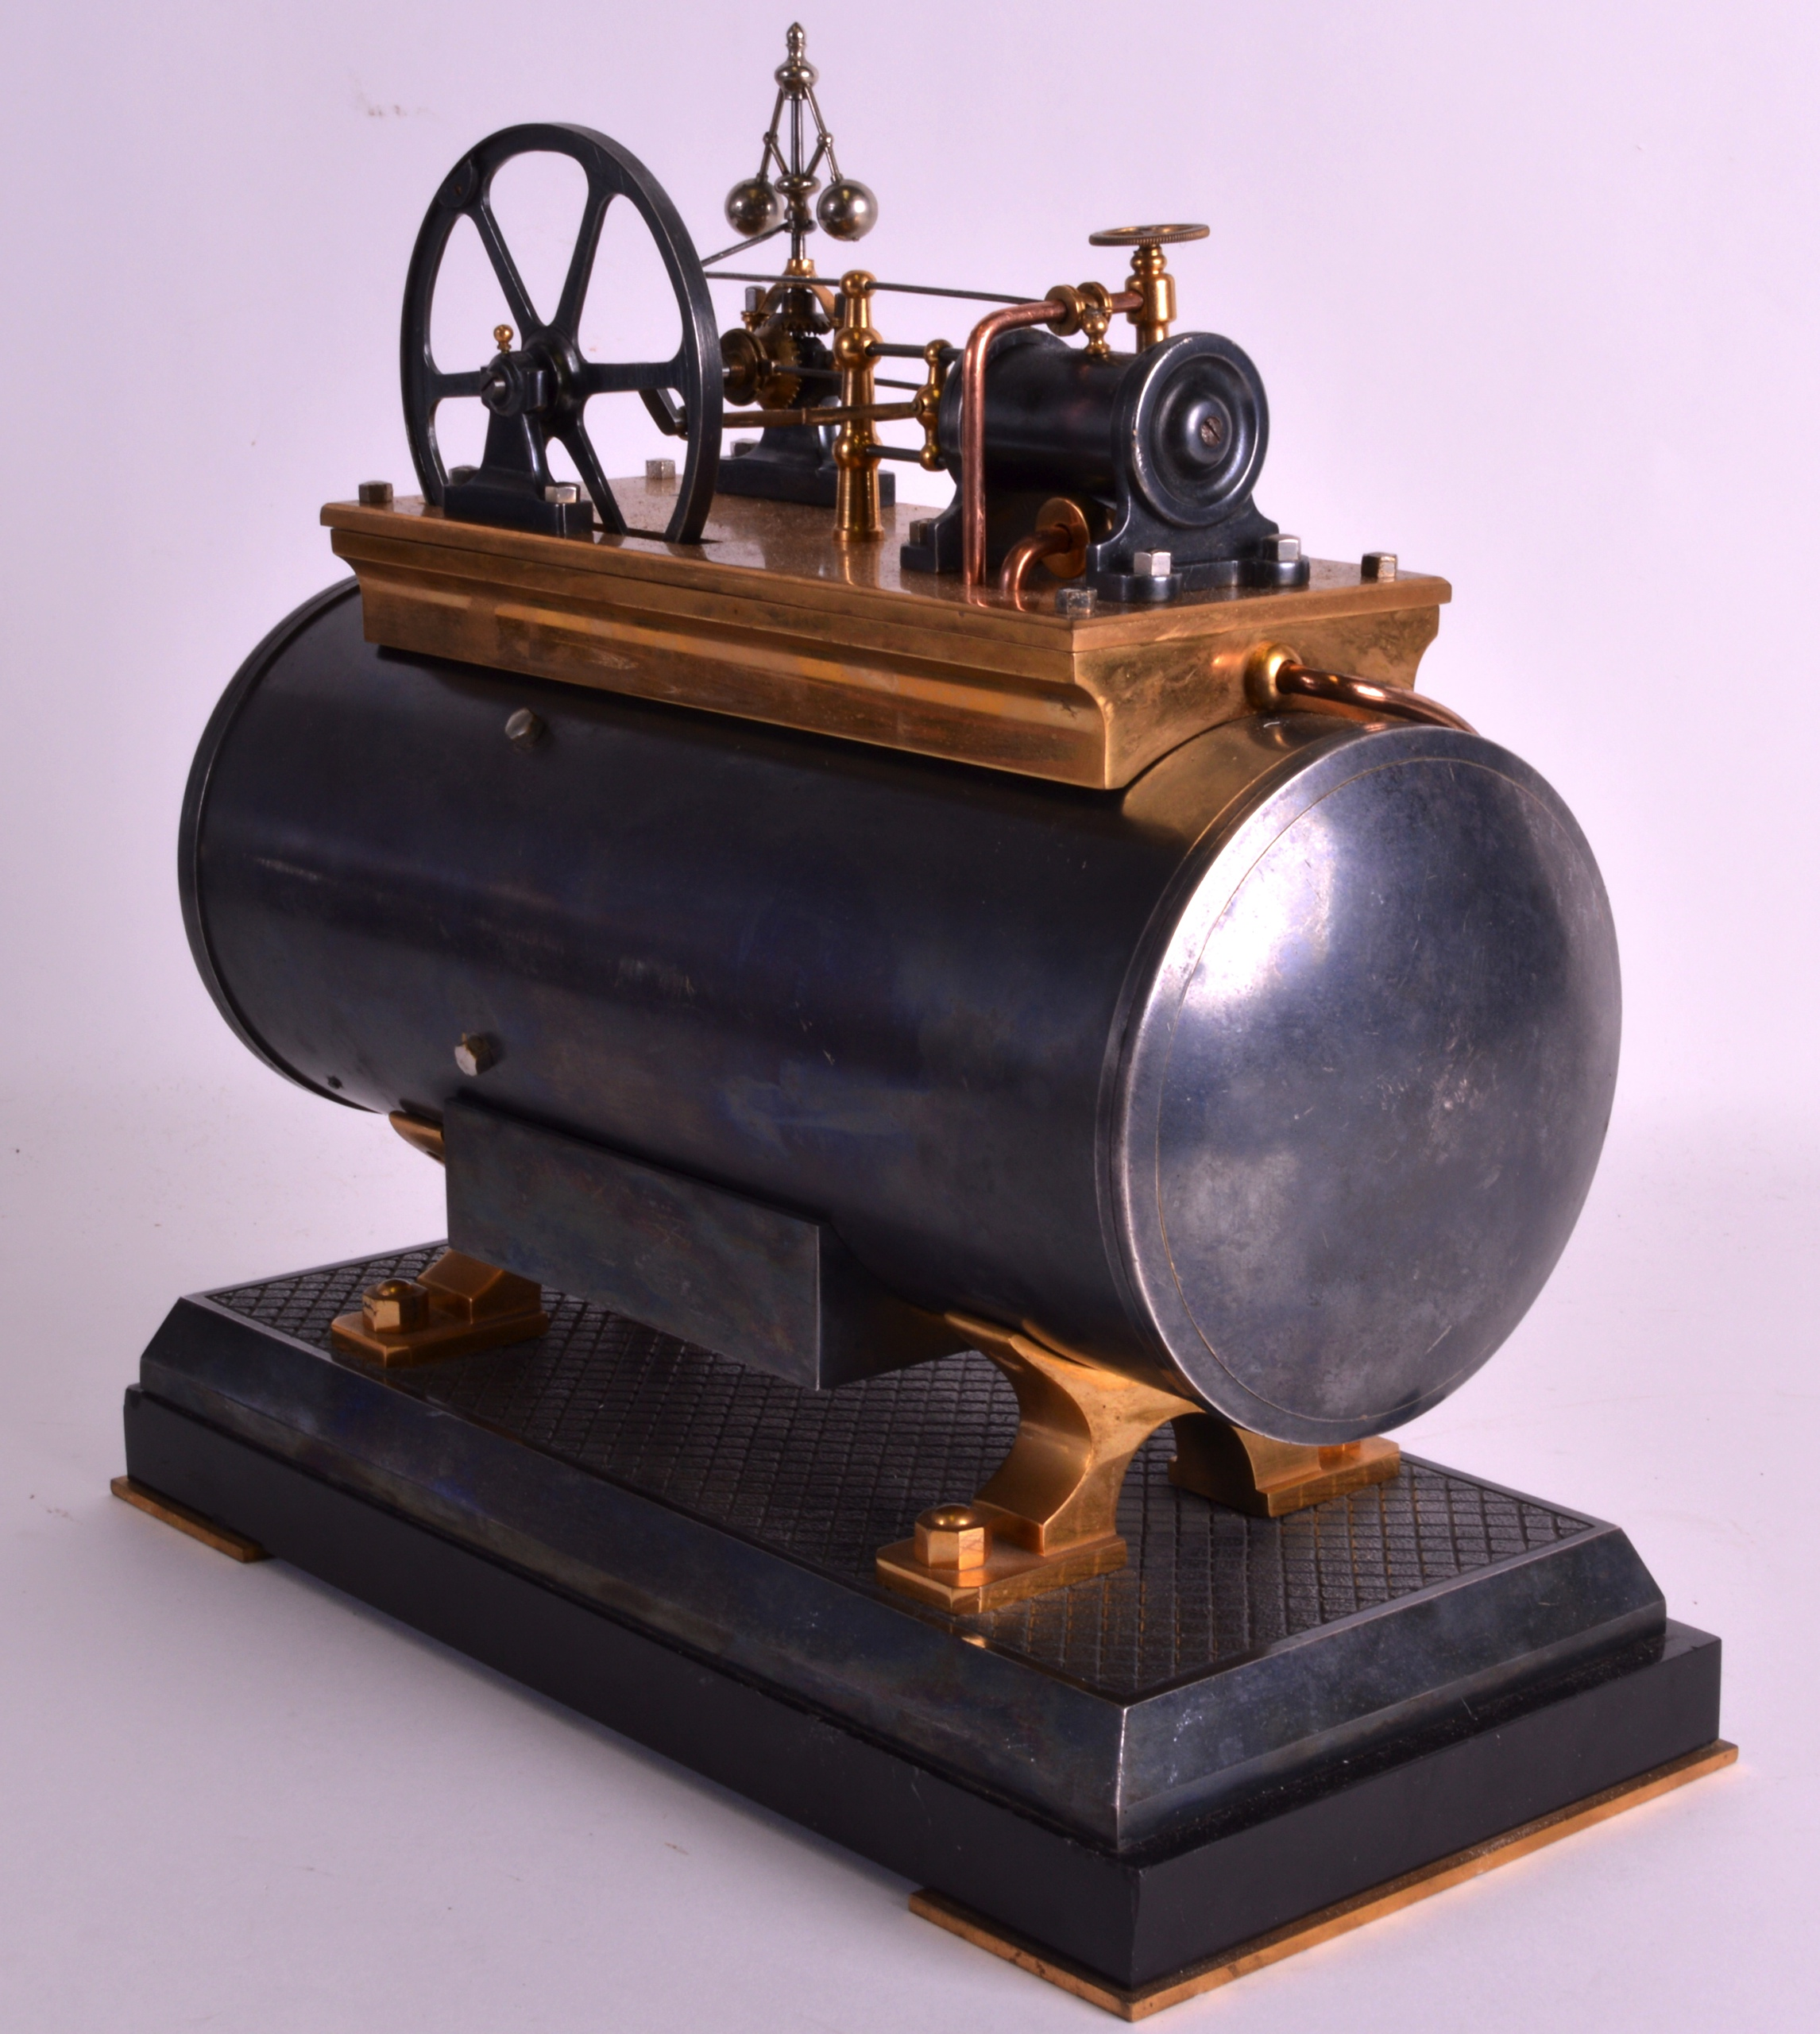 A FINE 19TH CENTURY FRENCH INDUSTRIAL BOILER ENGINE CLOCK C1880 with Roman chapters and blued - Image 7 of 7